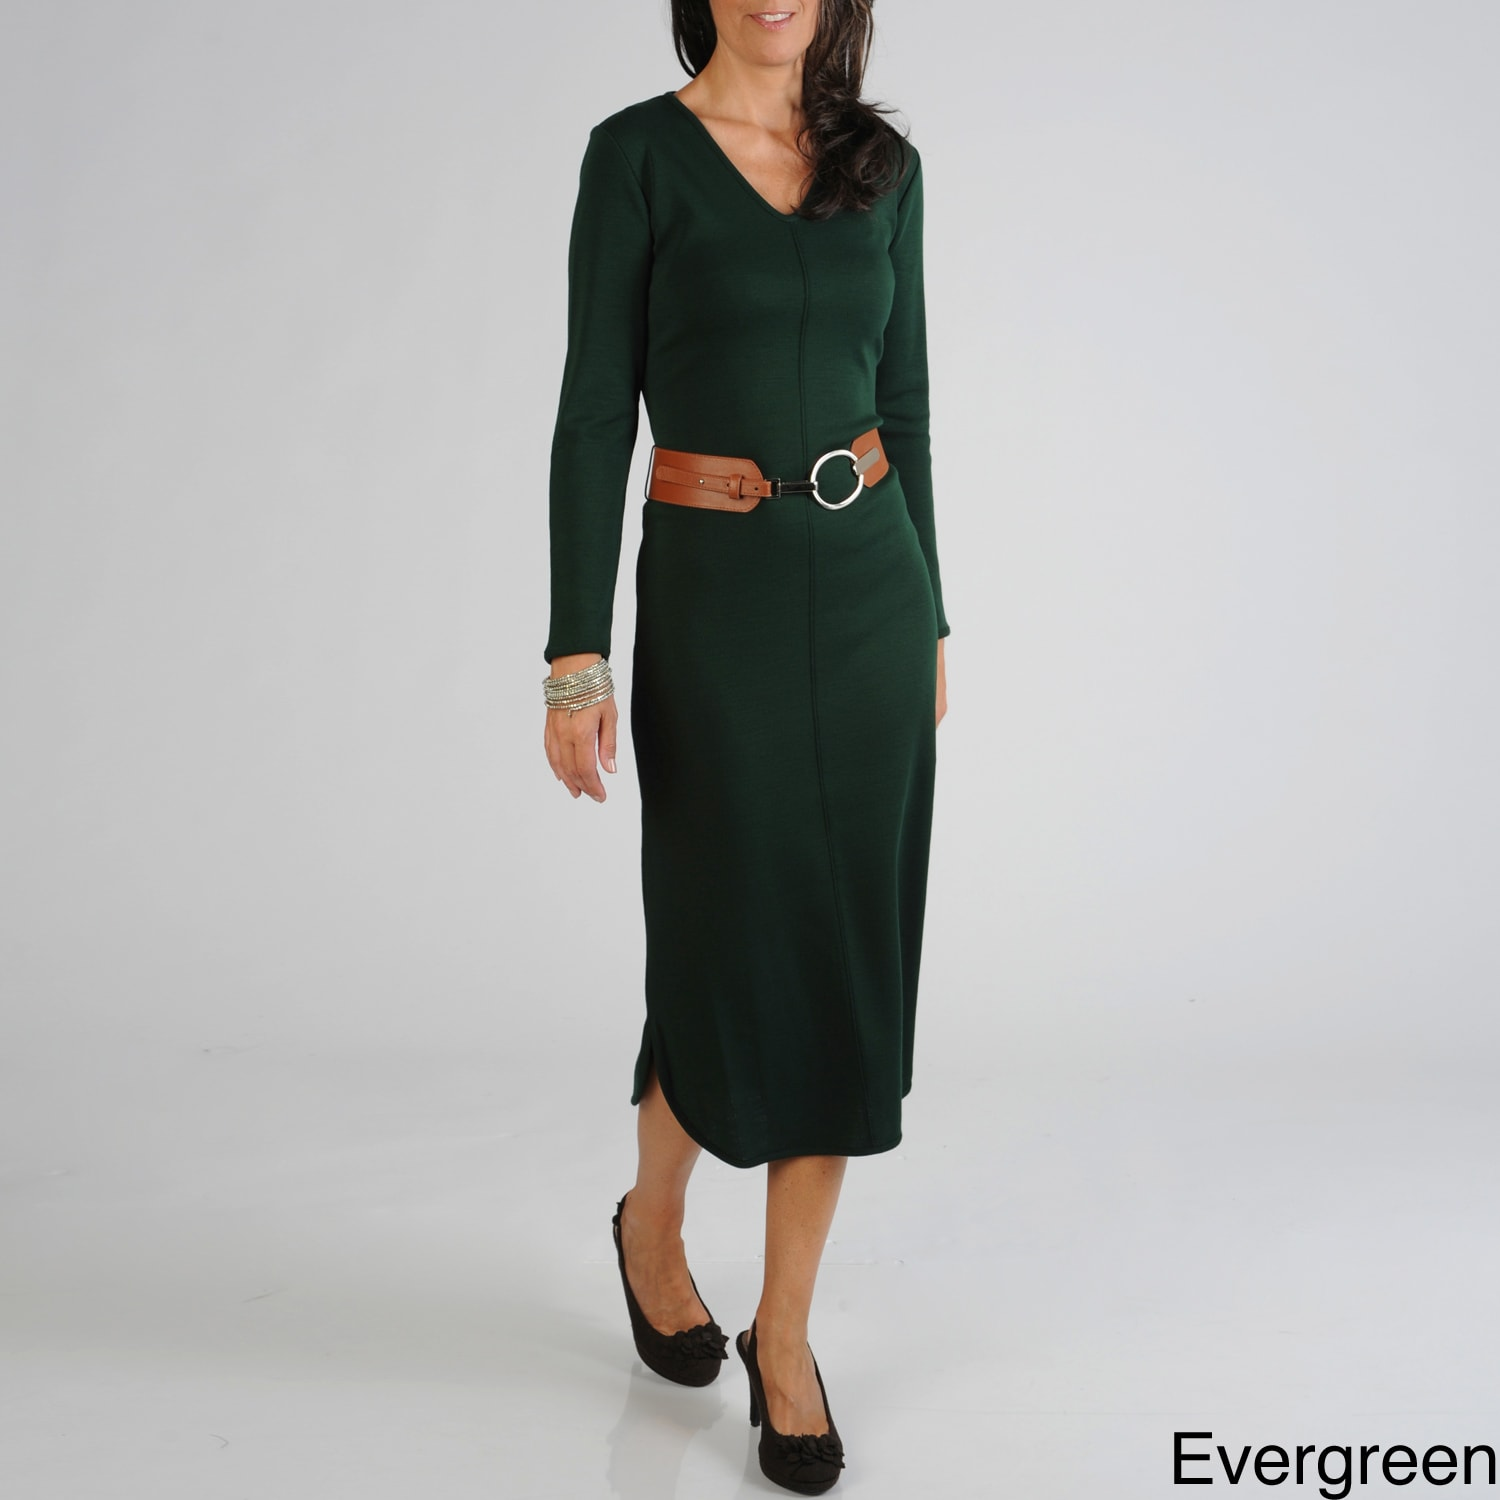 8e3656f7dfc Shop Lennie for Nina Leonard Women s Belted Dress - Free Shipping Today -  Overstock - 7286889